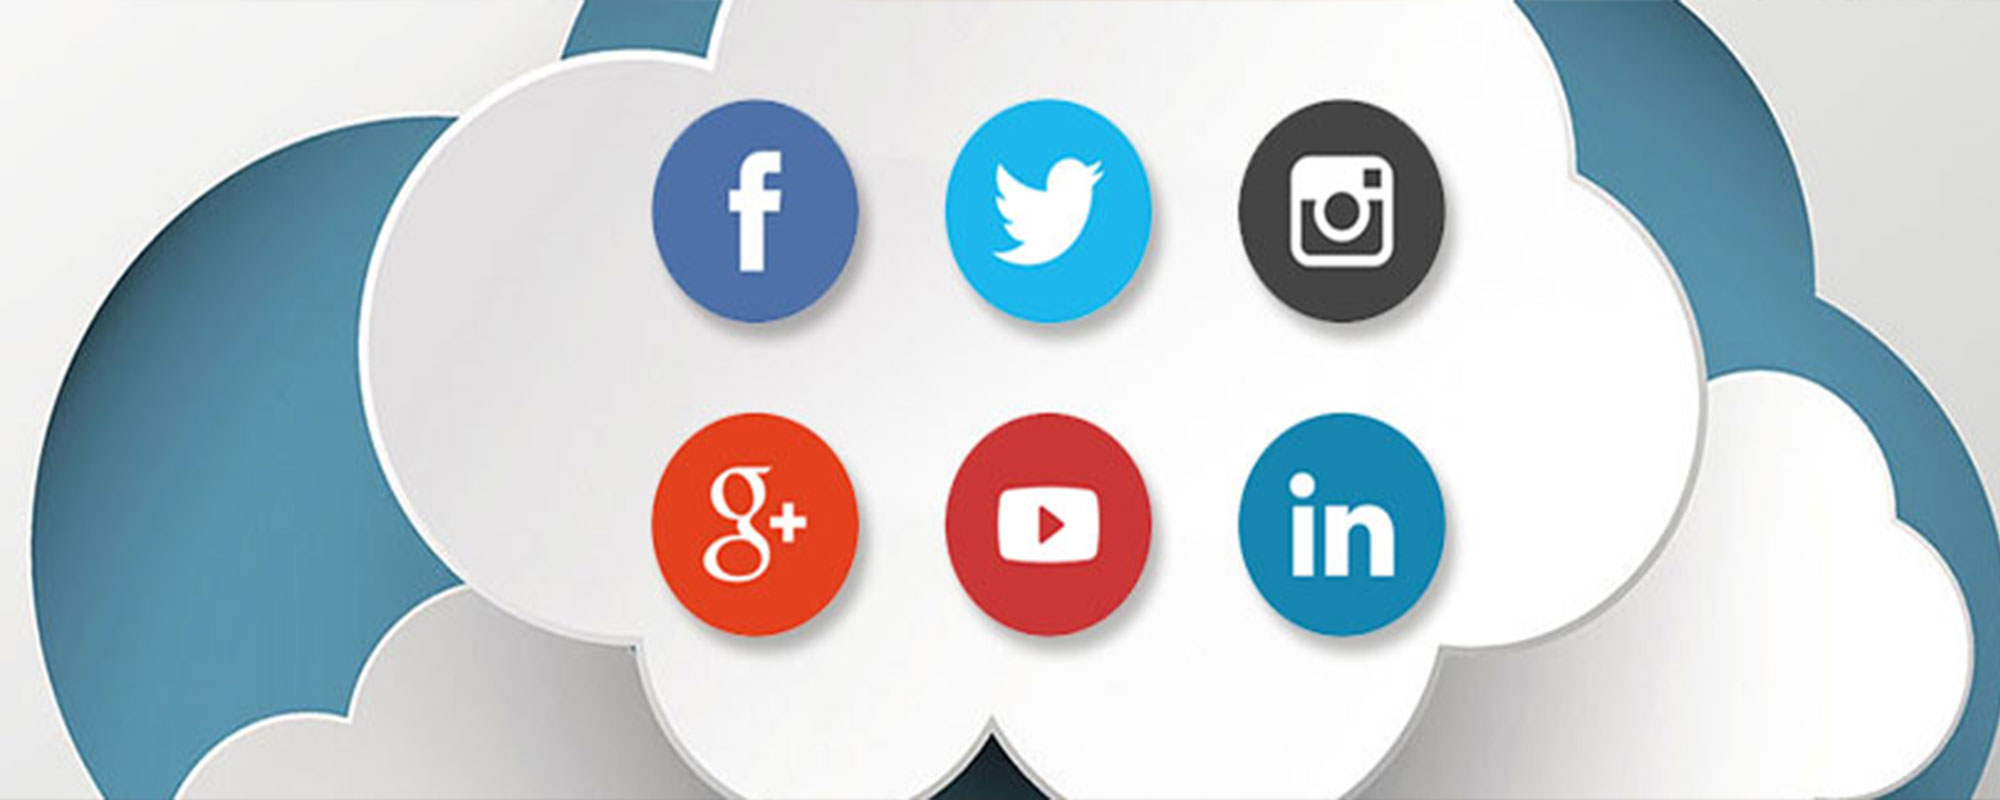 social media icons in cloud